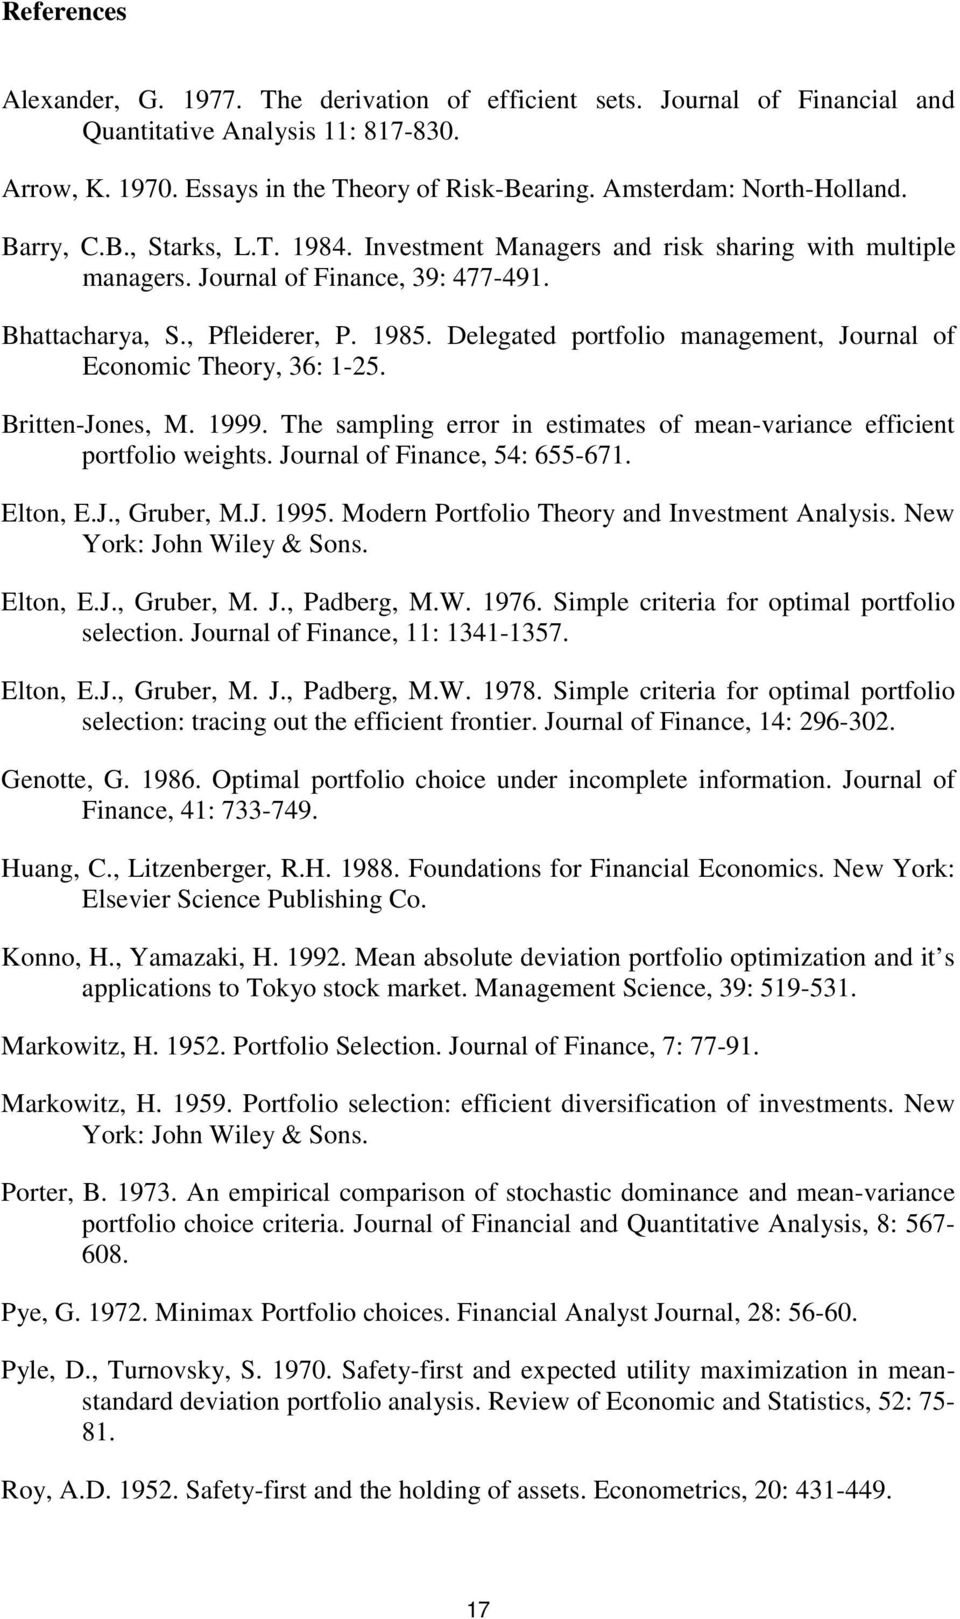 Britte-Joes, M. 999. The samplig error i estimates of mea-variace efficiet portfolio weights. Joural of Fiace, 54: 655-67. Elto, E.J., Gruber, M.J. 995. Moder Portfolio Theory ad Ivestmet Aalysis.